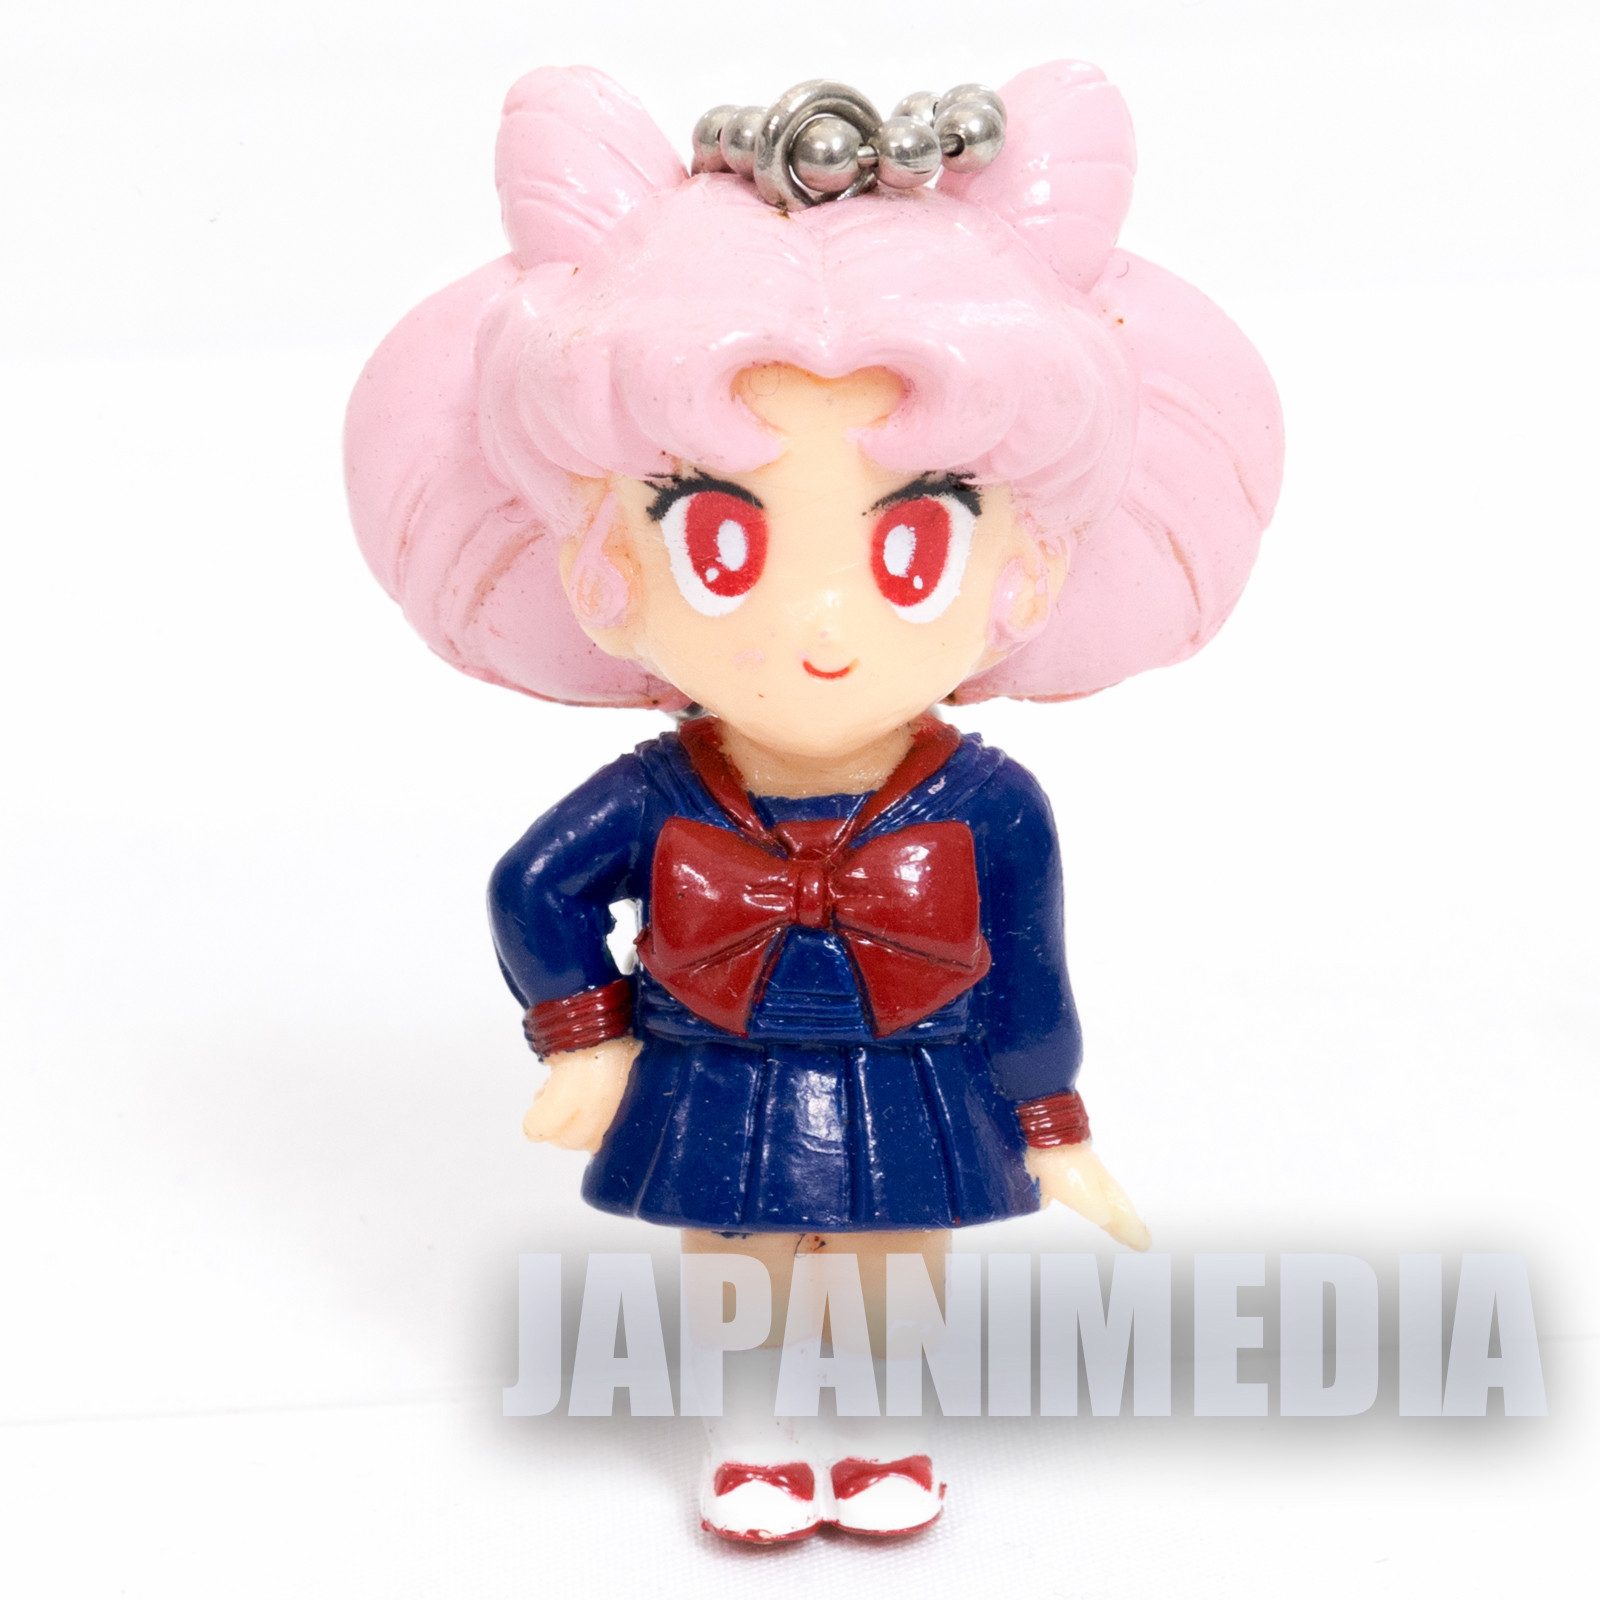 Sailor Moon Chibi Moon (Chibiusa) Figure Ballchain JAPAN ANIME MANGA 2